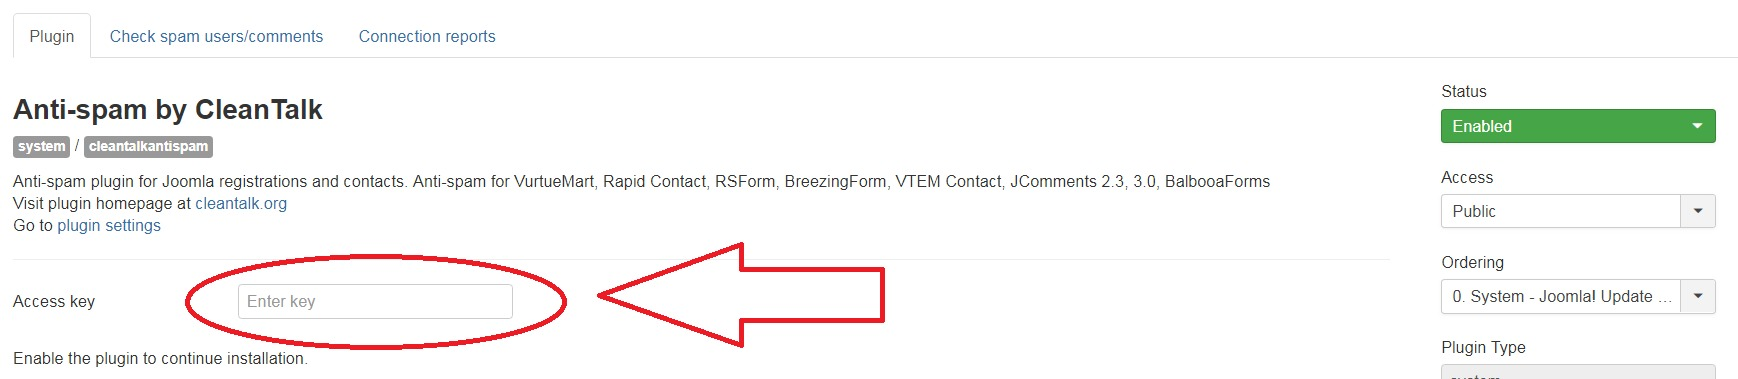 Joomla 3 anti-spam plugin options